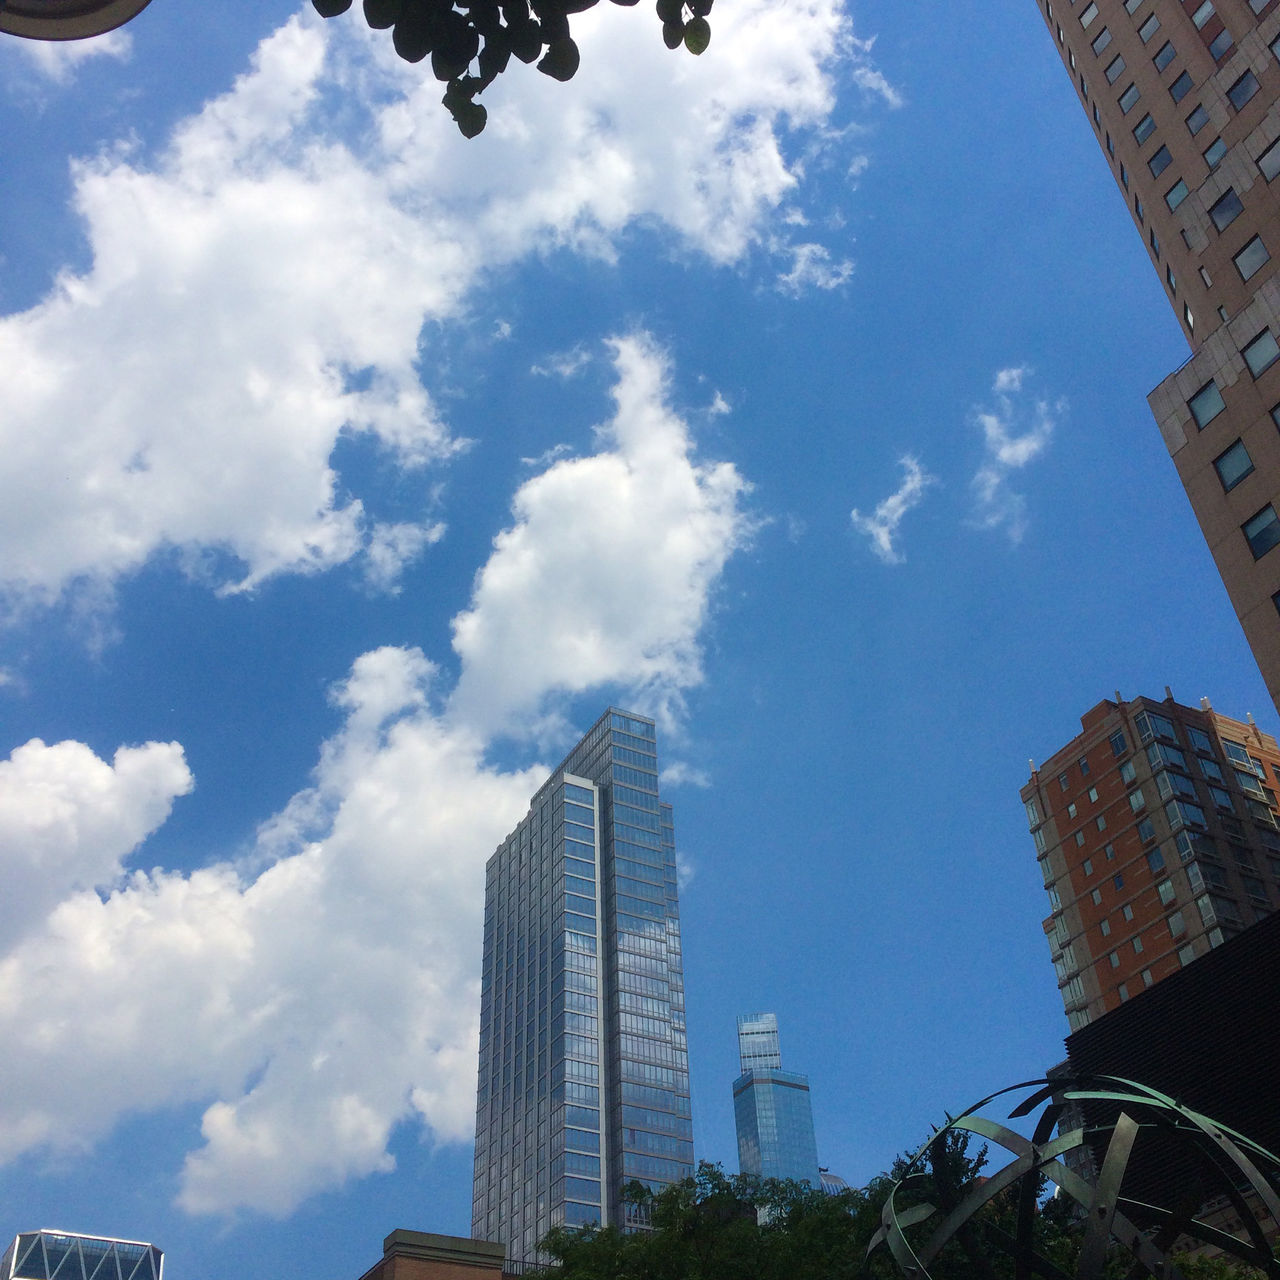 Buildings reach up to the sky, invisible cities in mid-town Manhattan Architecture Blue Building Exterior Business Finance And Industry City Cityscape Cloud - Sky Clouds And Sky Day Dia Glass Building Invisible Cities Low Angle View Manhattan Modern New York City New York ❤ No People Outdoors Reach Up To The S Reflection Sky Skyscraper Urban Skyline